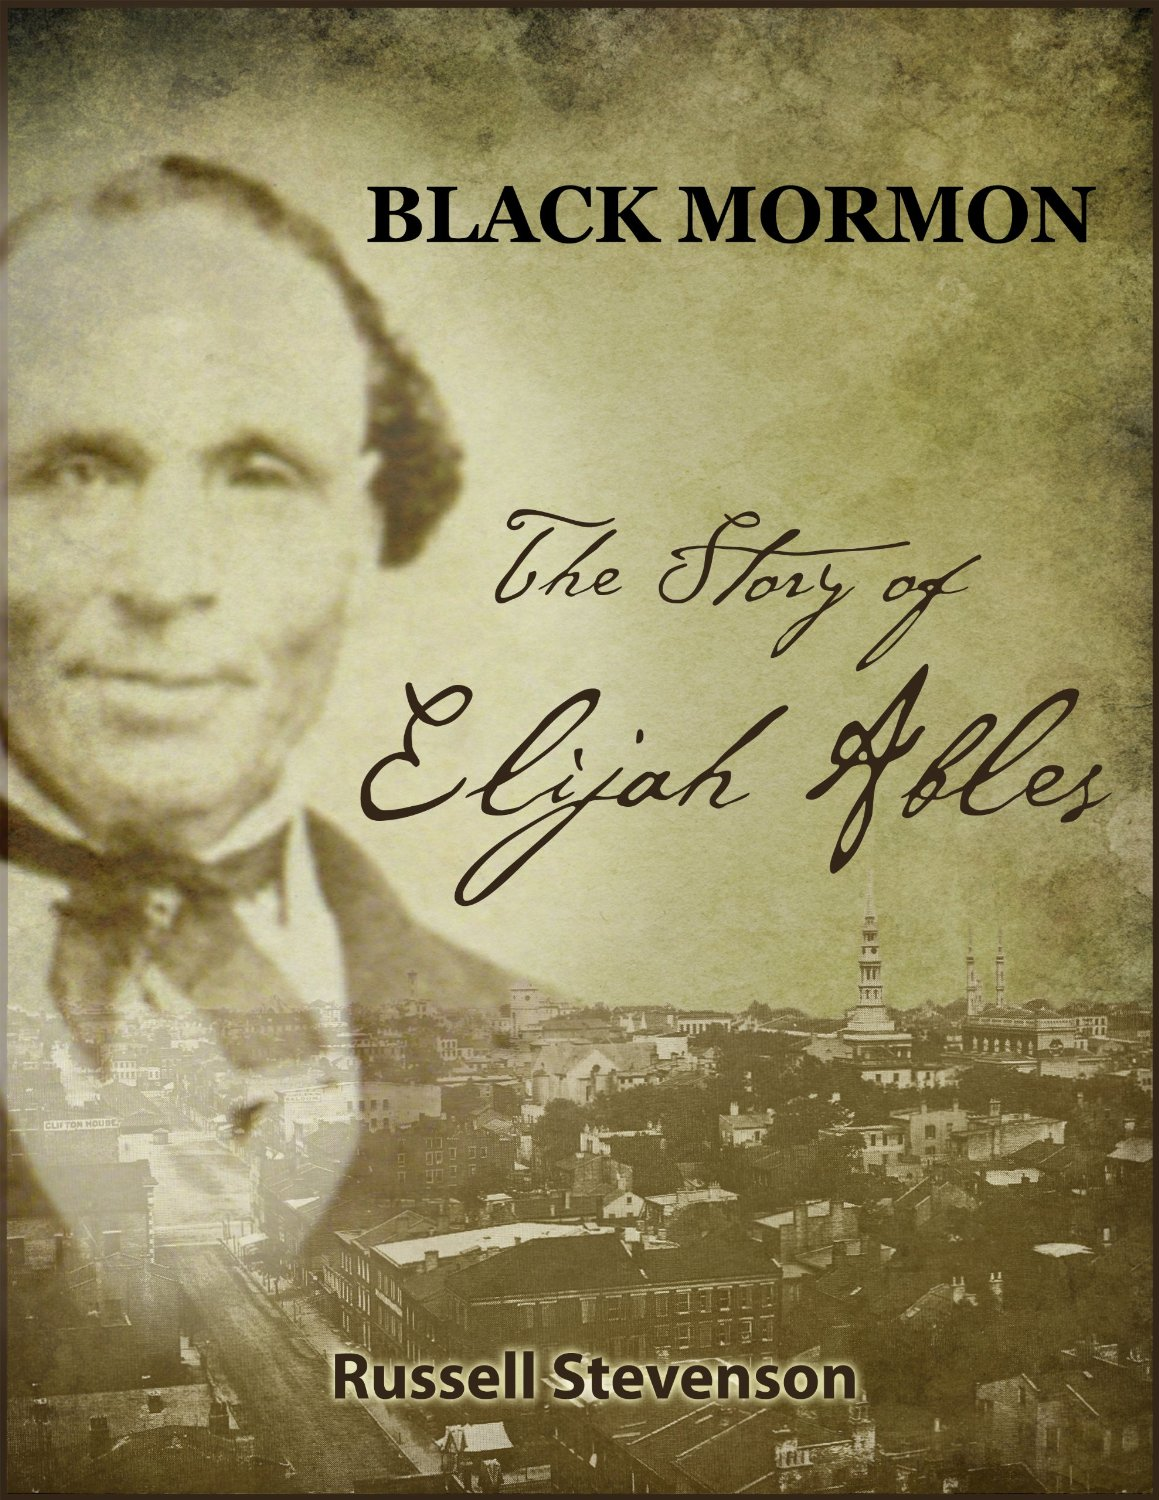 Elijah Abel, early black Mormon with Priesthood